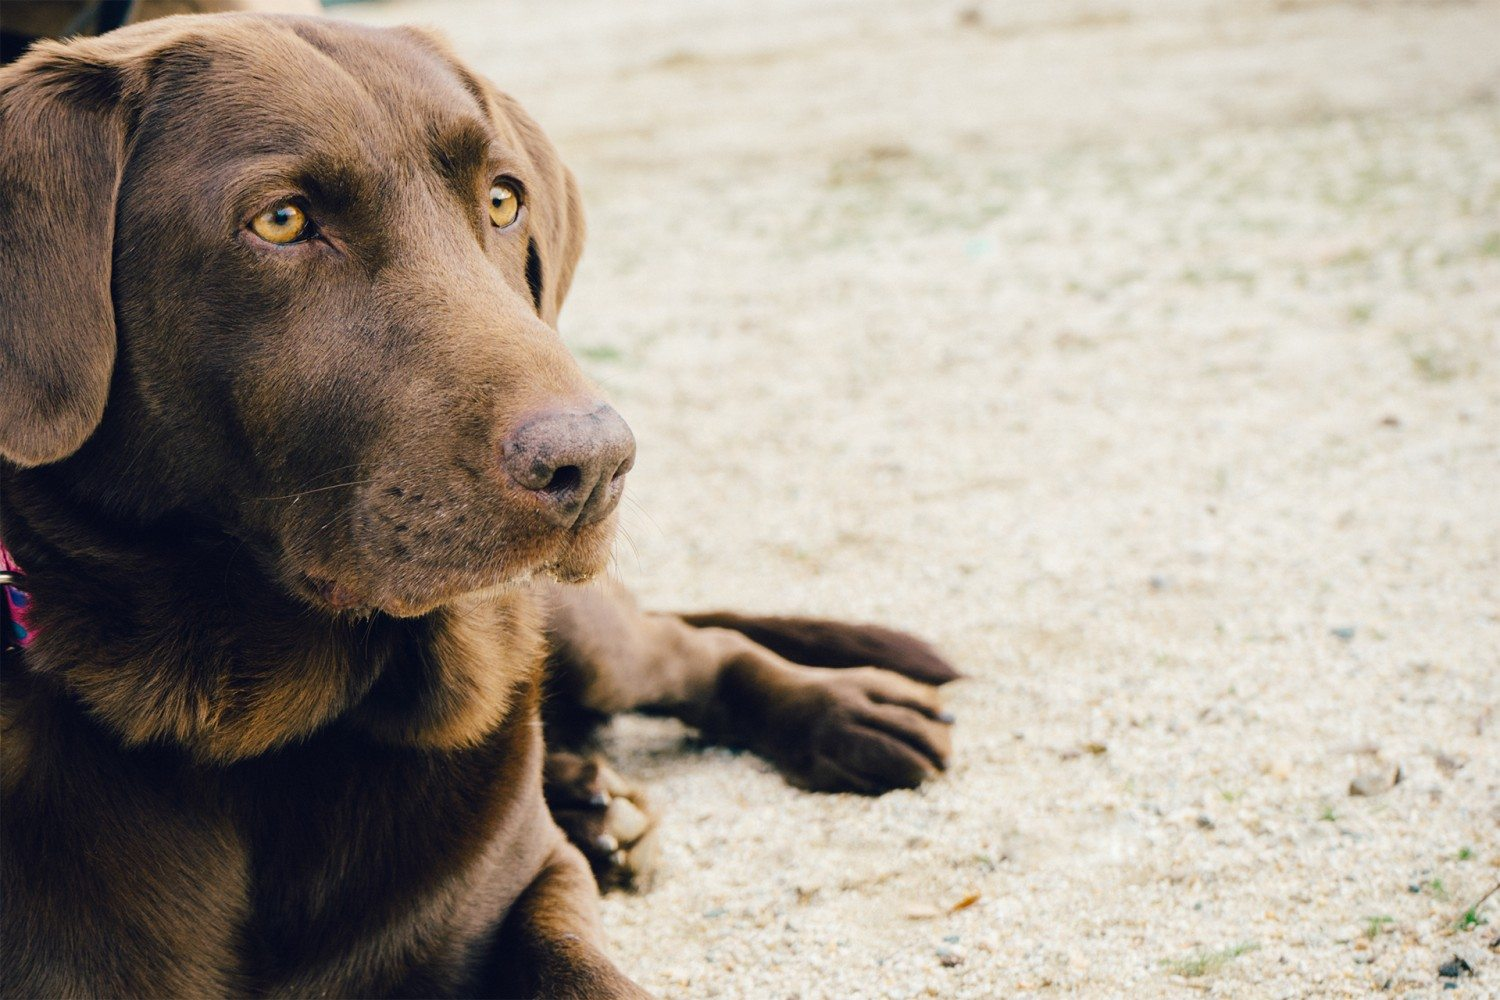 Chinese Herbalist And Nutritionist Marc Ching's Top 3 Tips for Preventative Pet Care